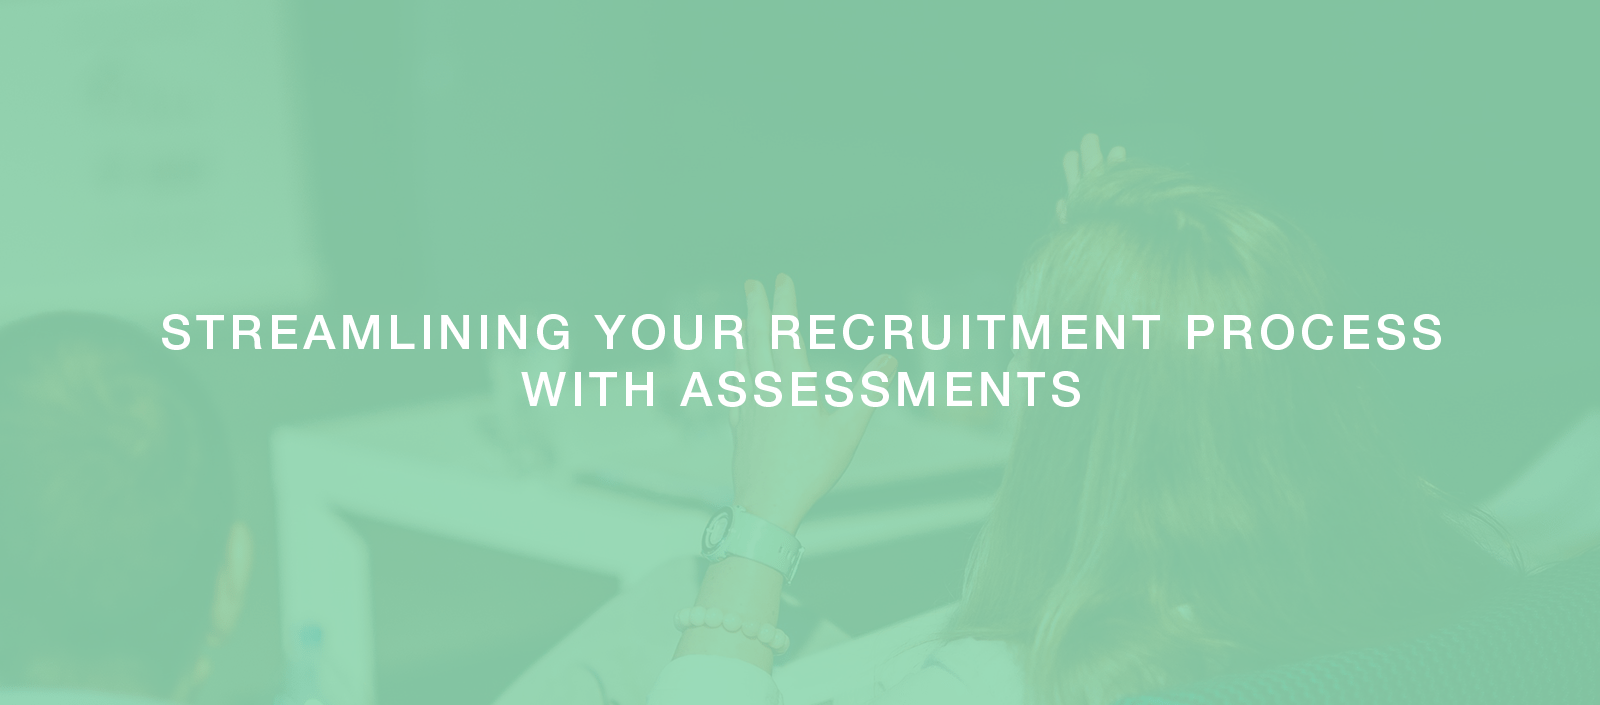 Streamlining Your Recruitment Process With Assessments